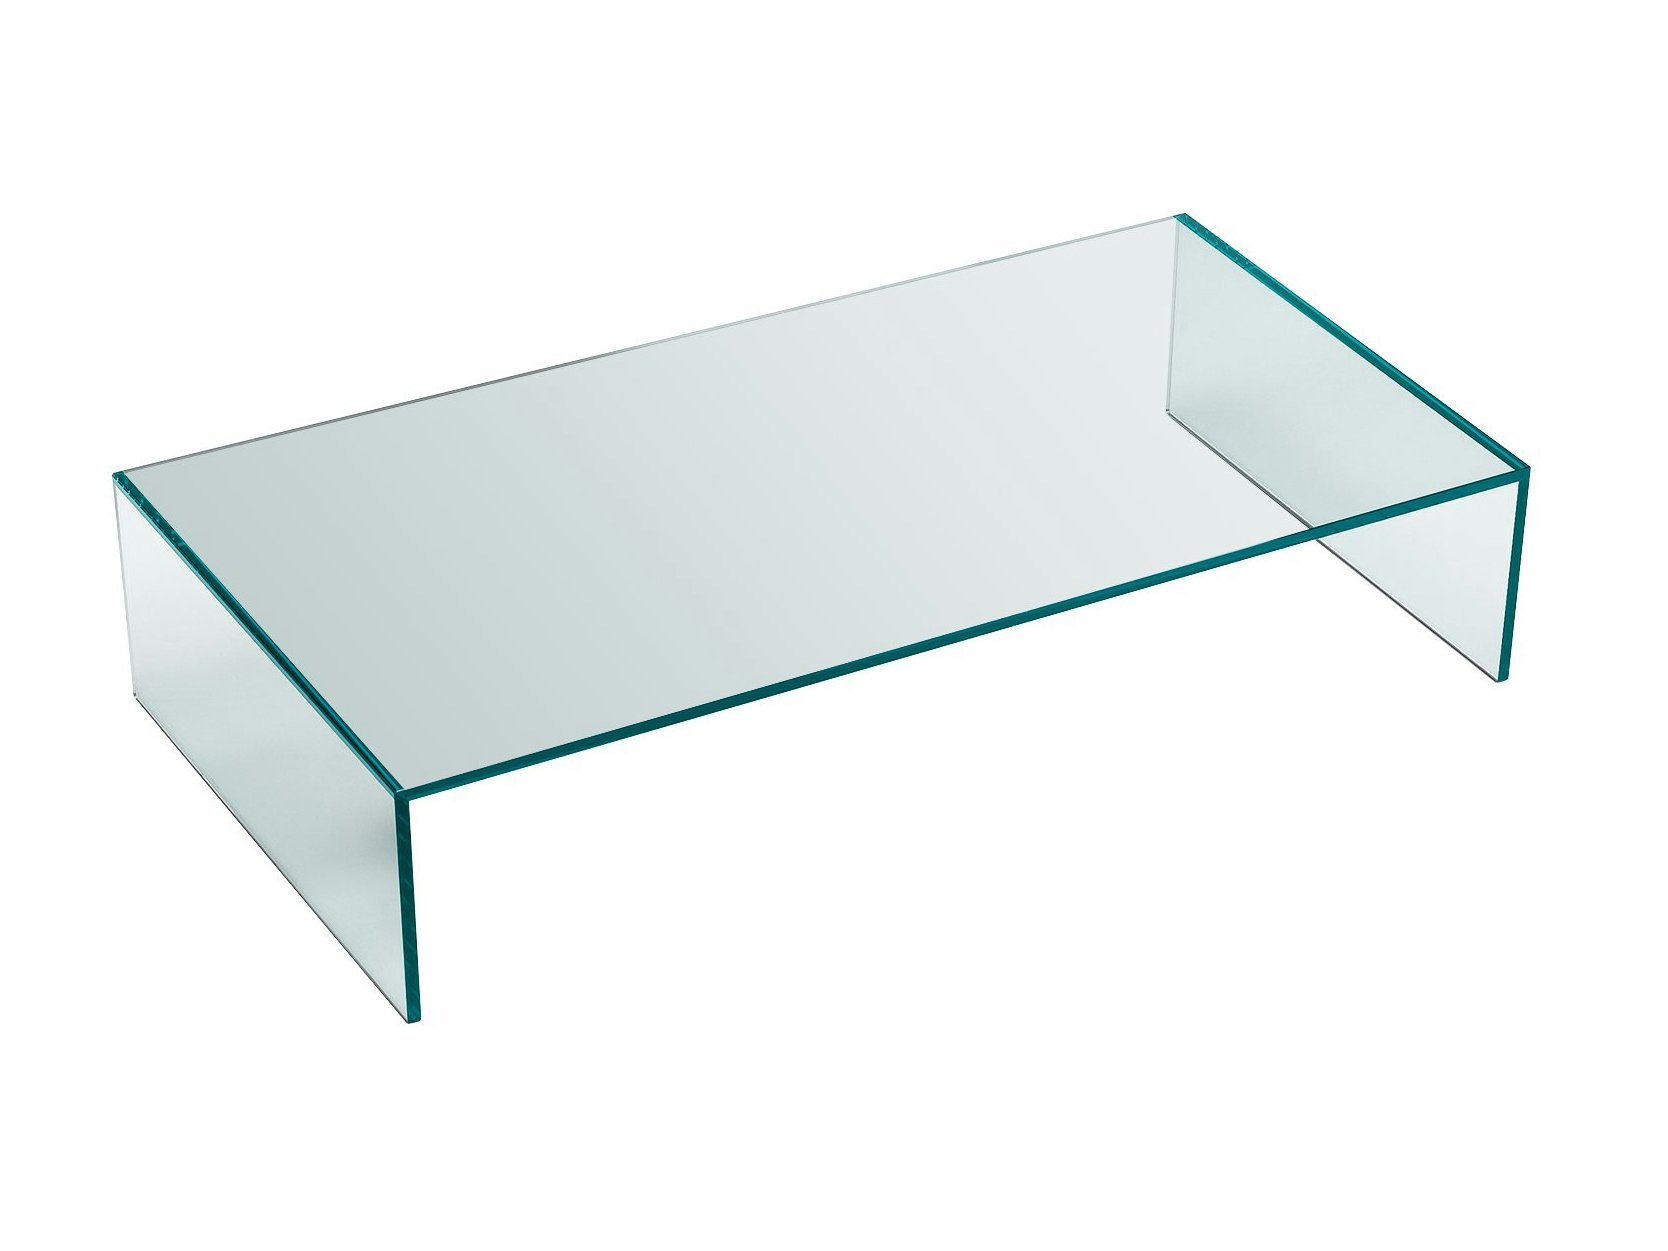 Table basse en verre eden by t d tonelli design for Table basse verre design